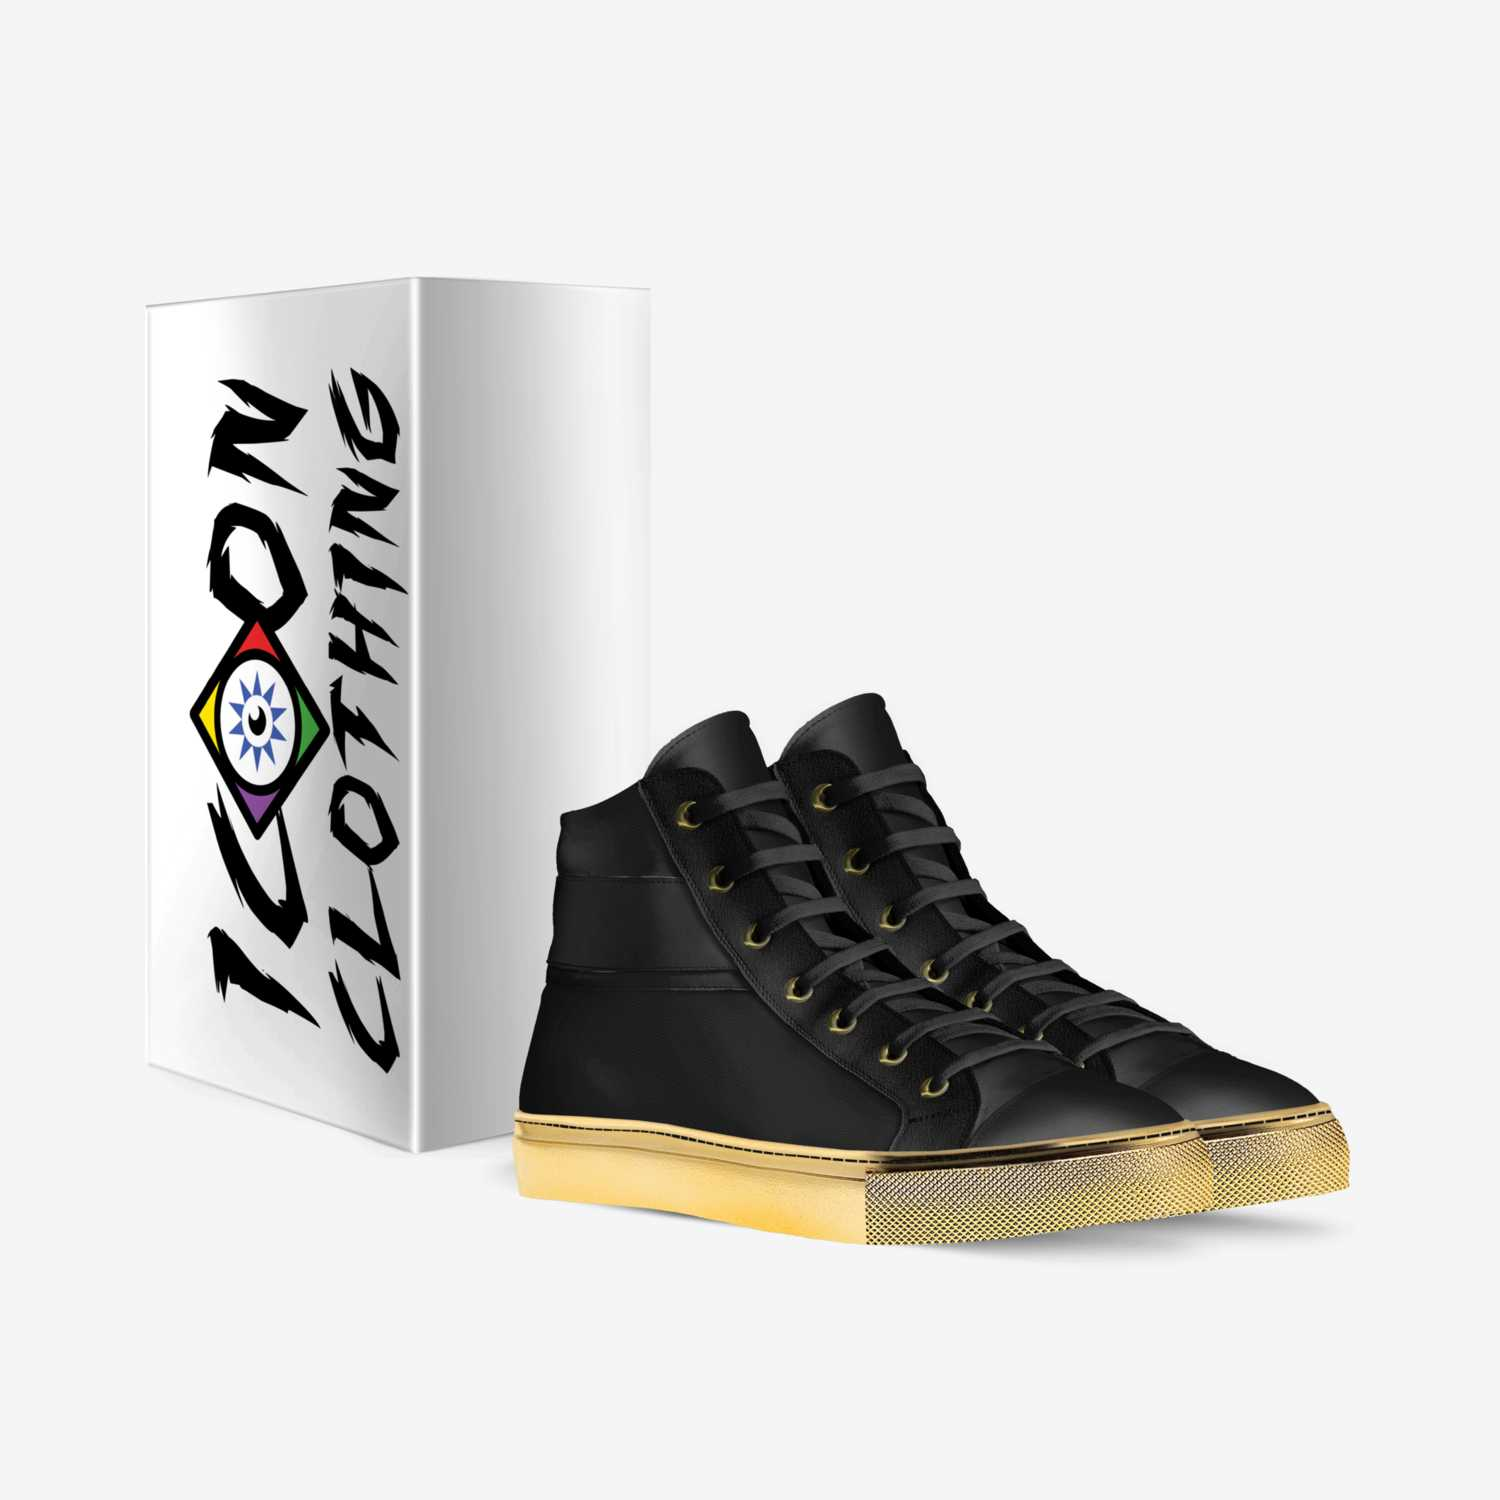 Airborne Skaters custom made in Italy shoes by Jordon Toomer | Box view